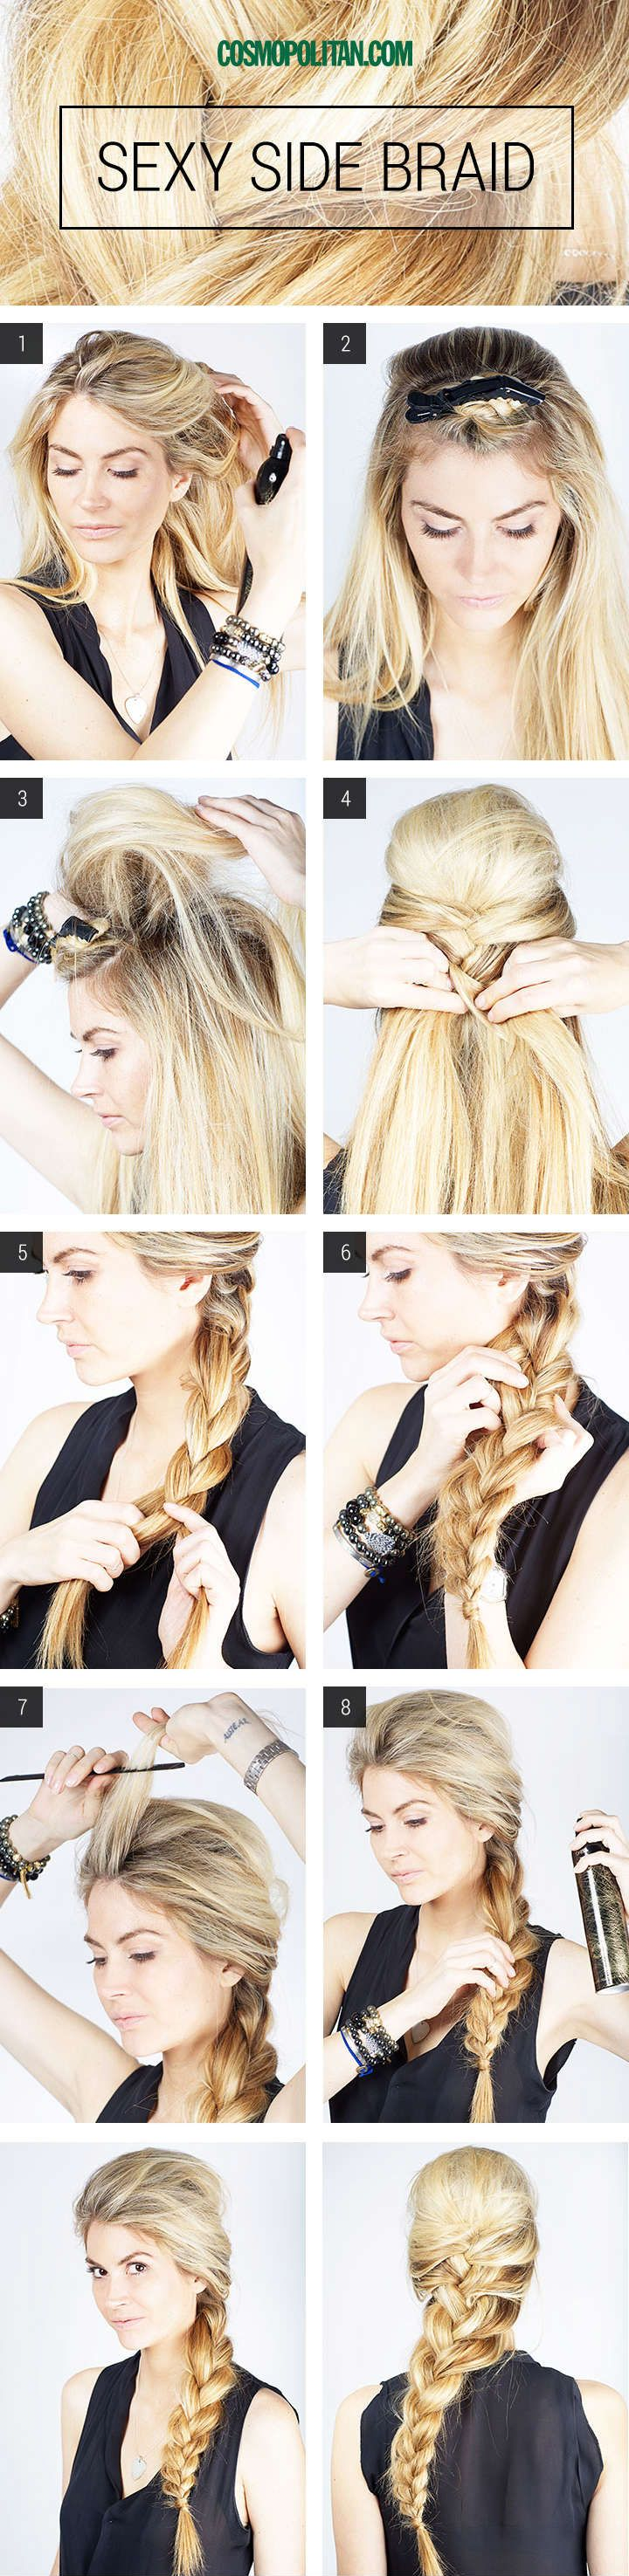 Diy sexy side braid tutorial hair styles white girls pinterest